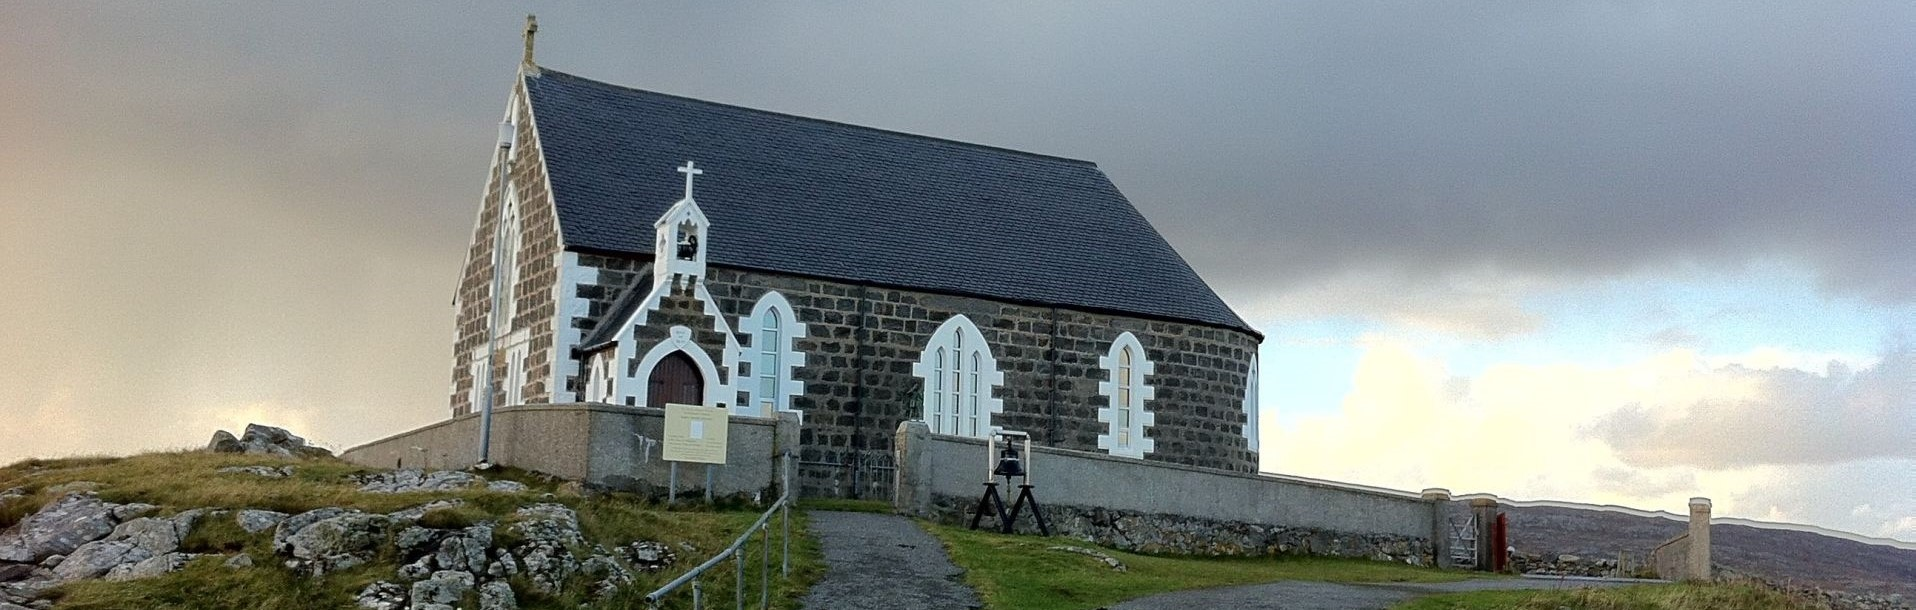 The Scottish Catholic Historical Association Church